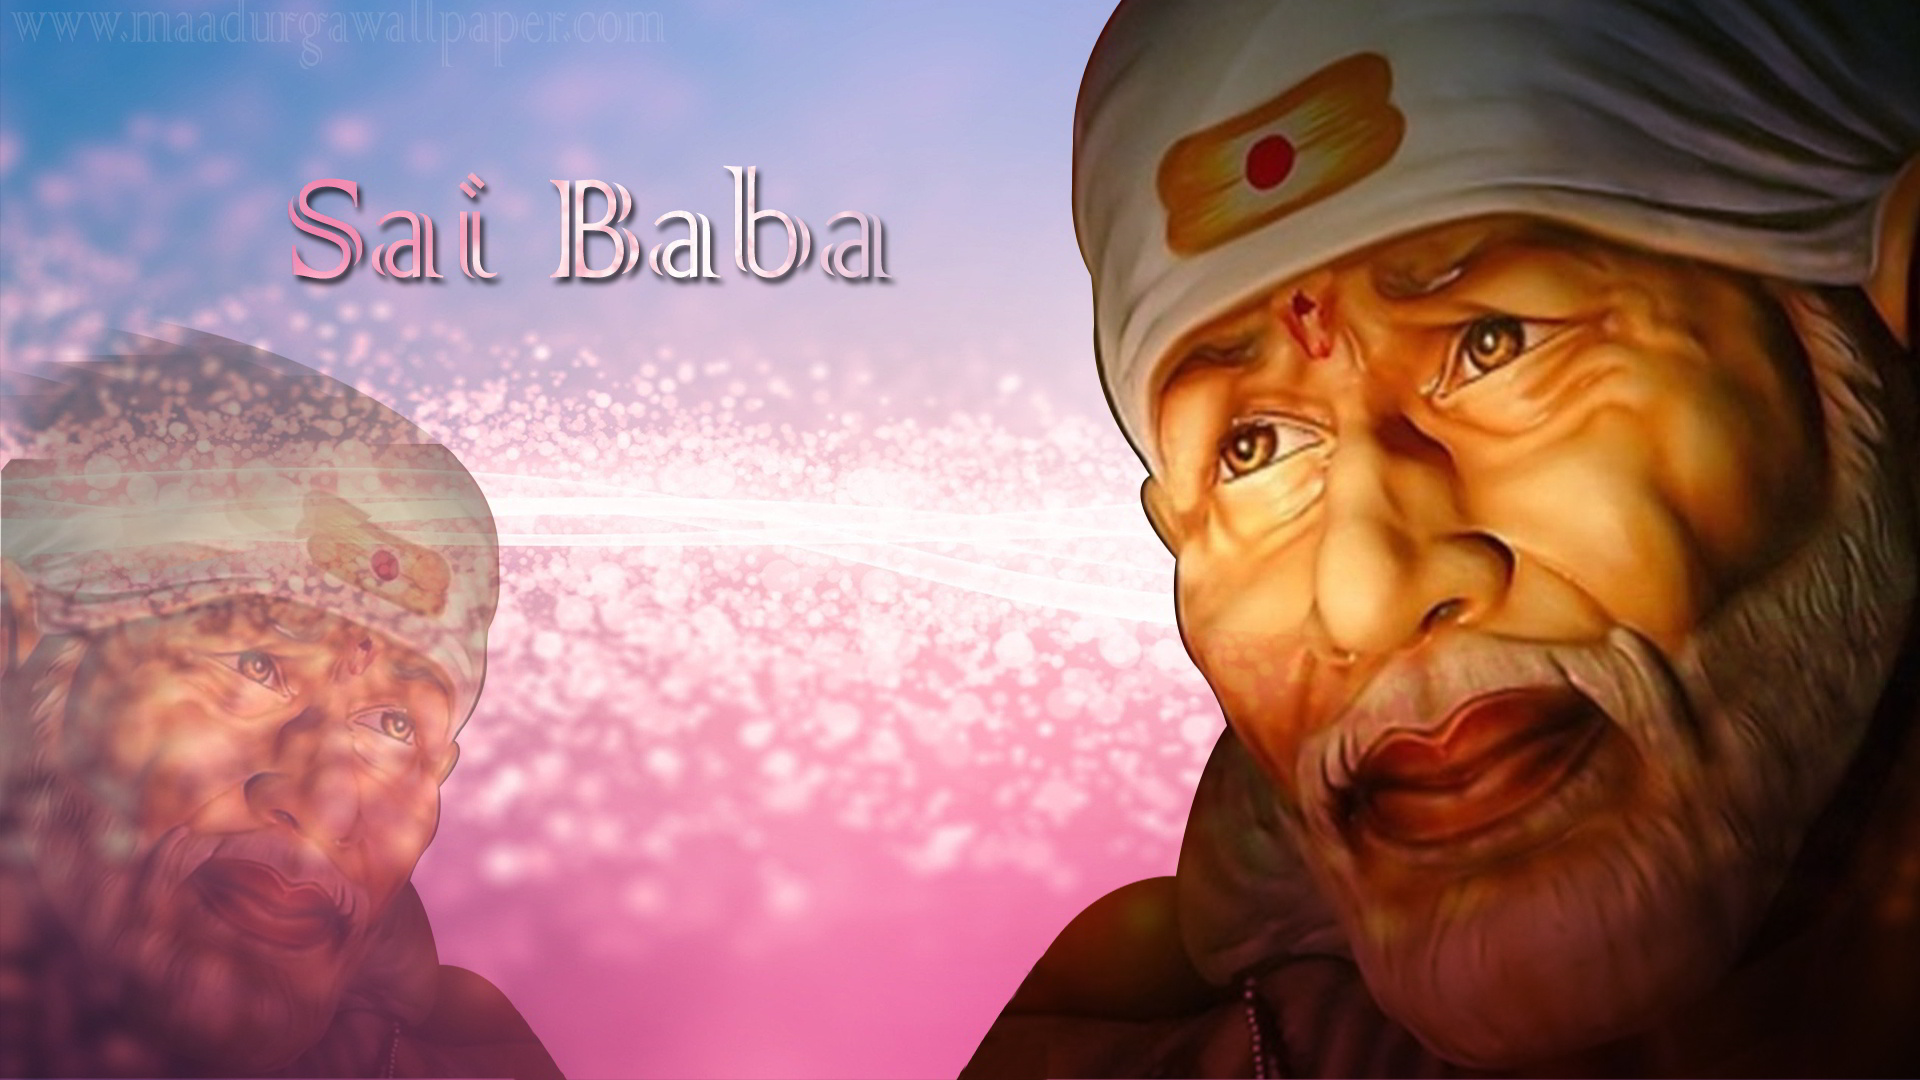 3D Sai Baba Wallpapers Free Download